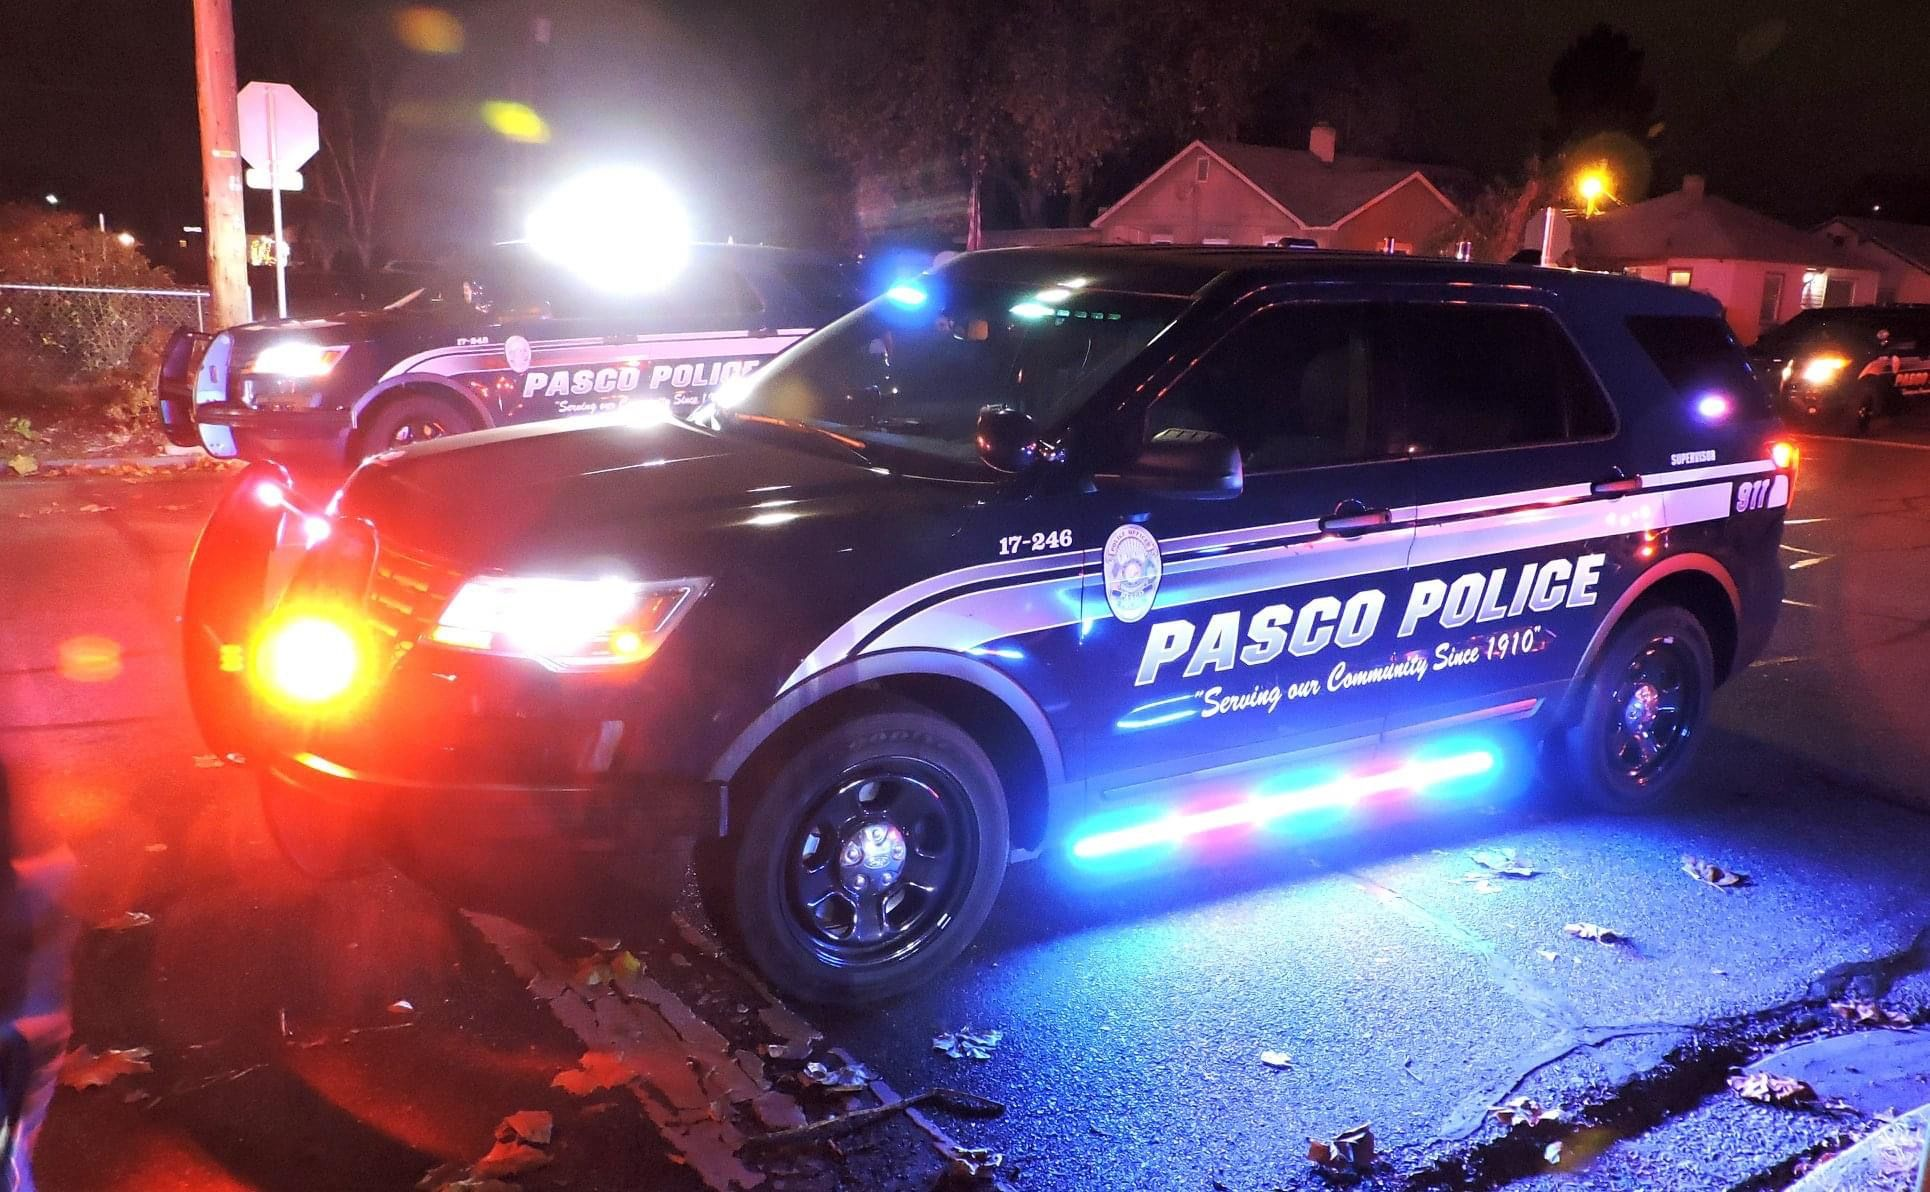 pin by anthony ortiz on police vehicles across the usa in 2020 old police cars police cars emergency vehicles pinterest